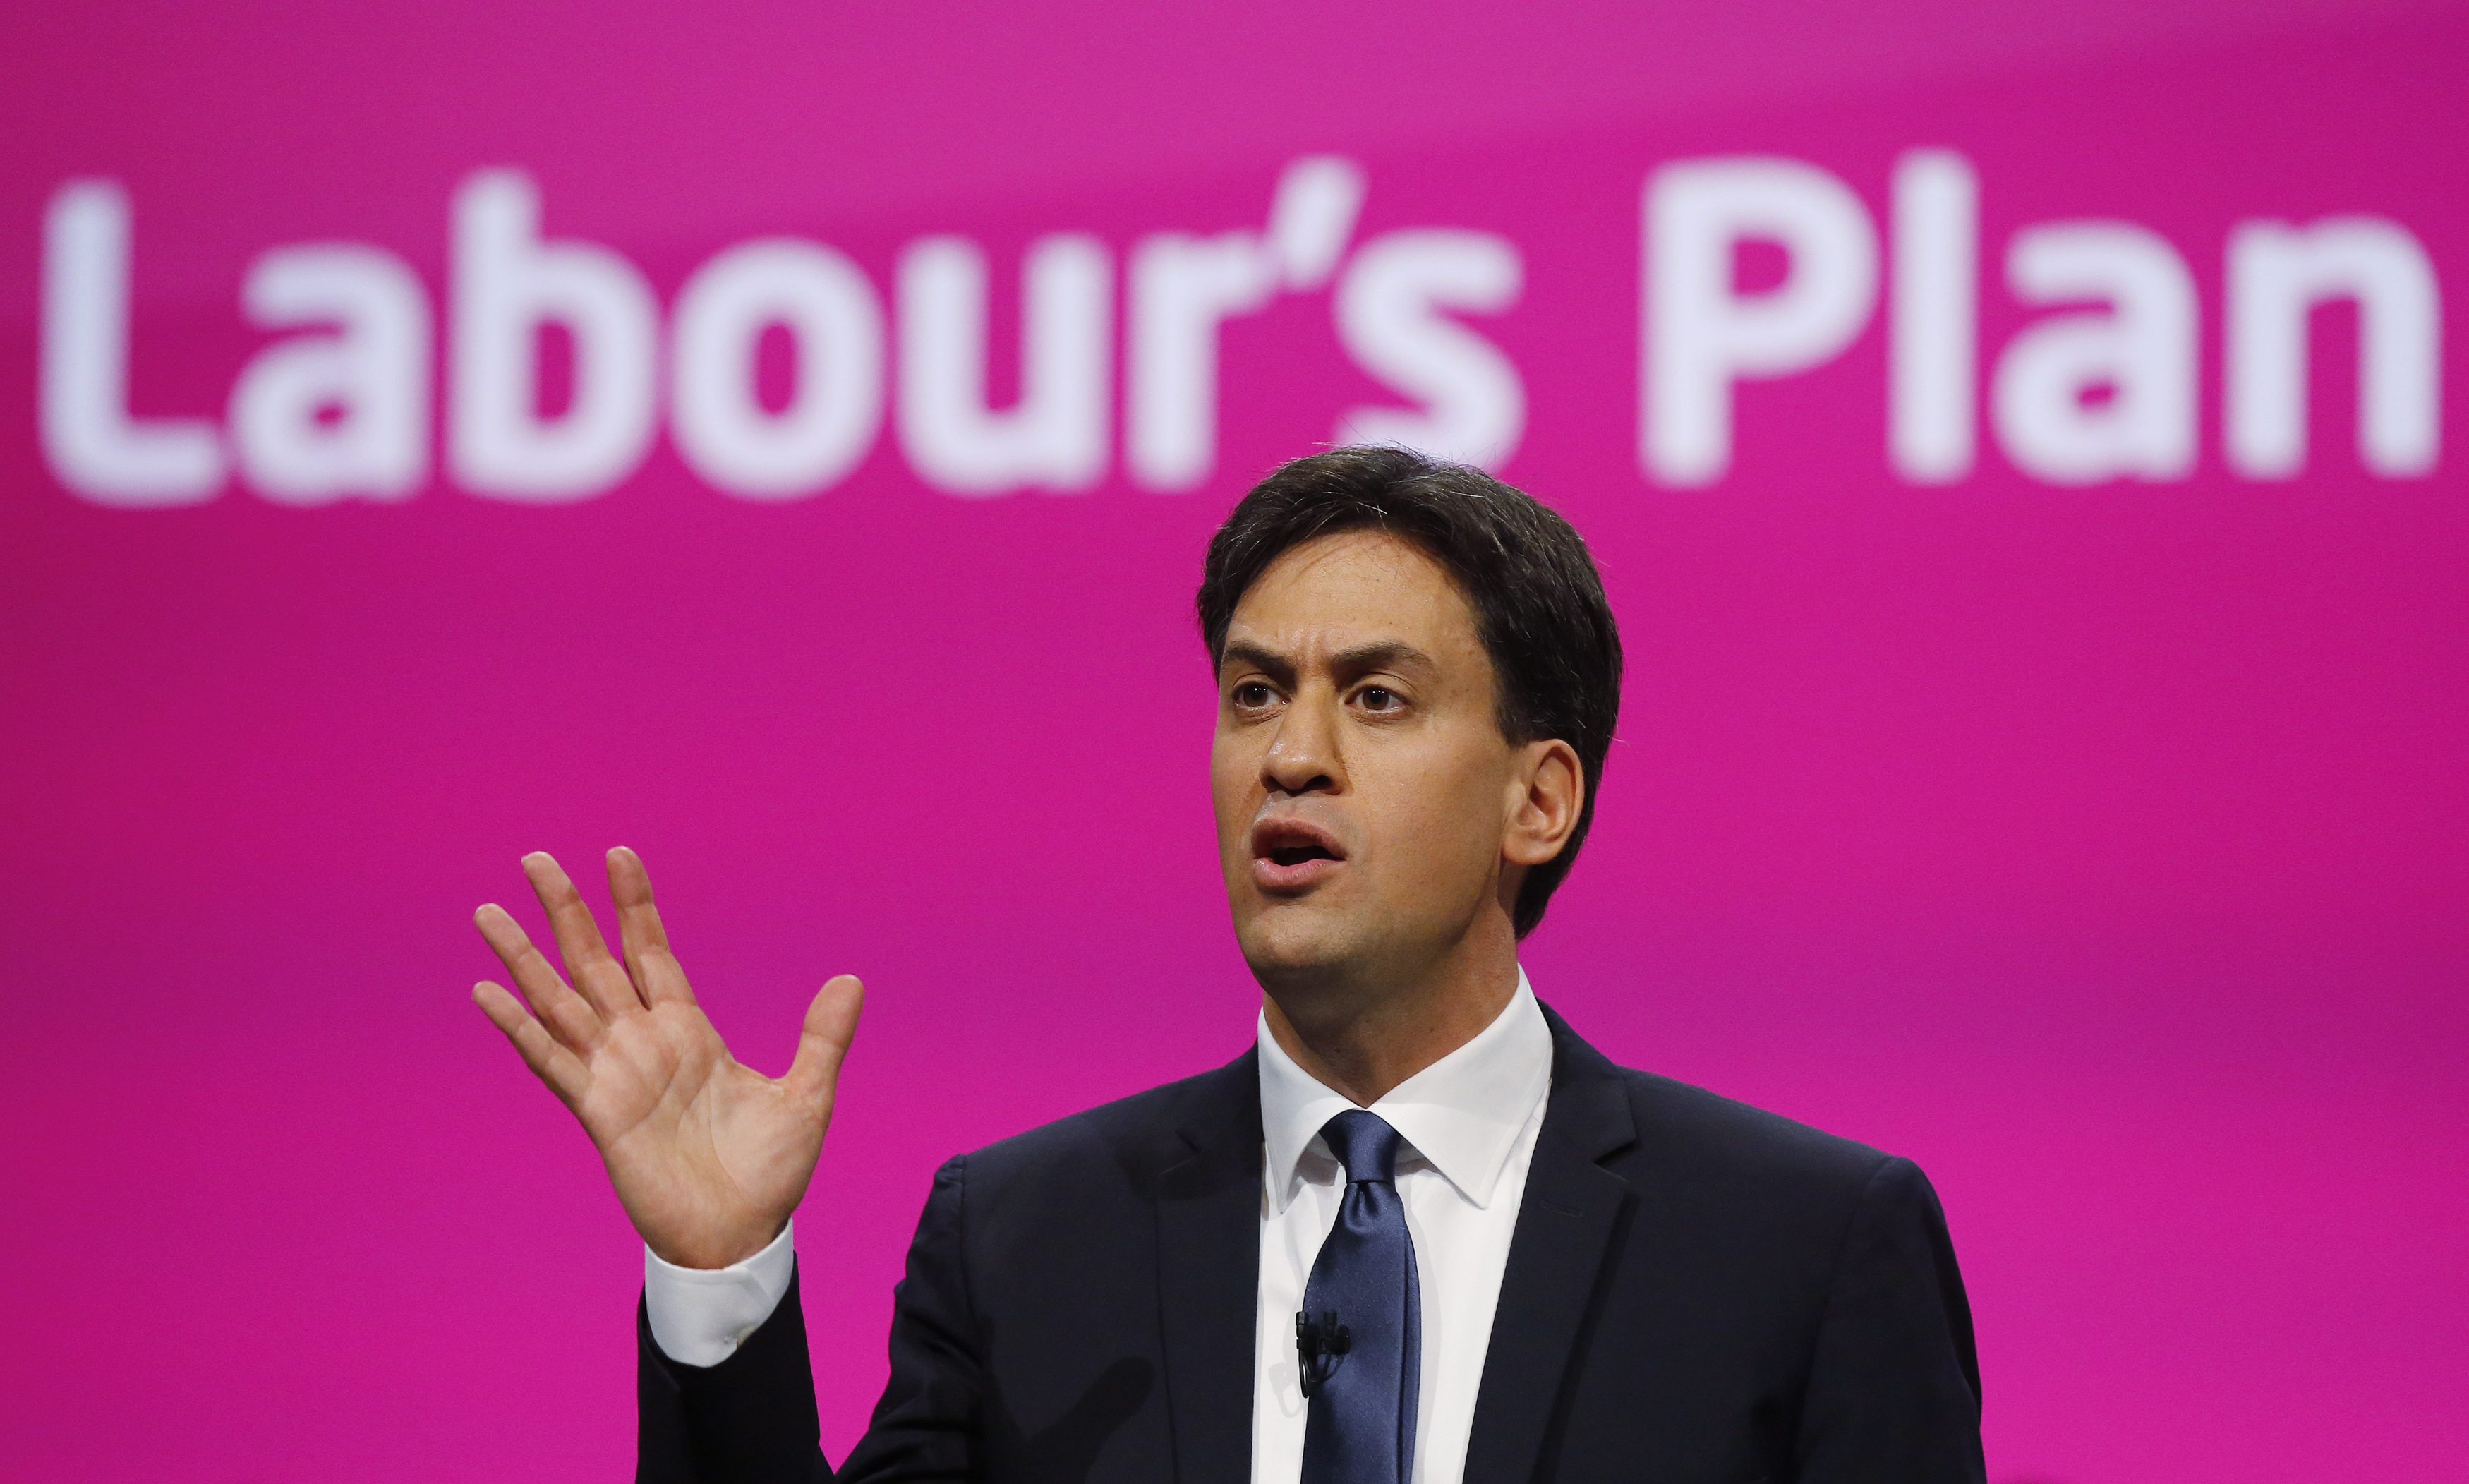 Britain's Labour Leader Confirms He Forgot Vital Parts of Pre-Election Speech